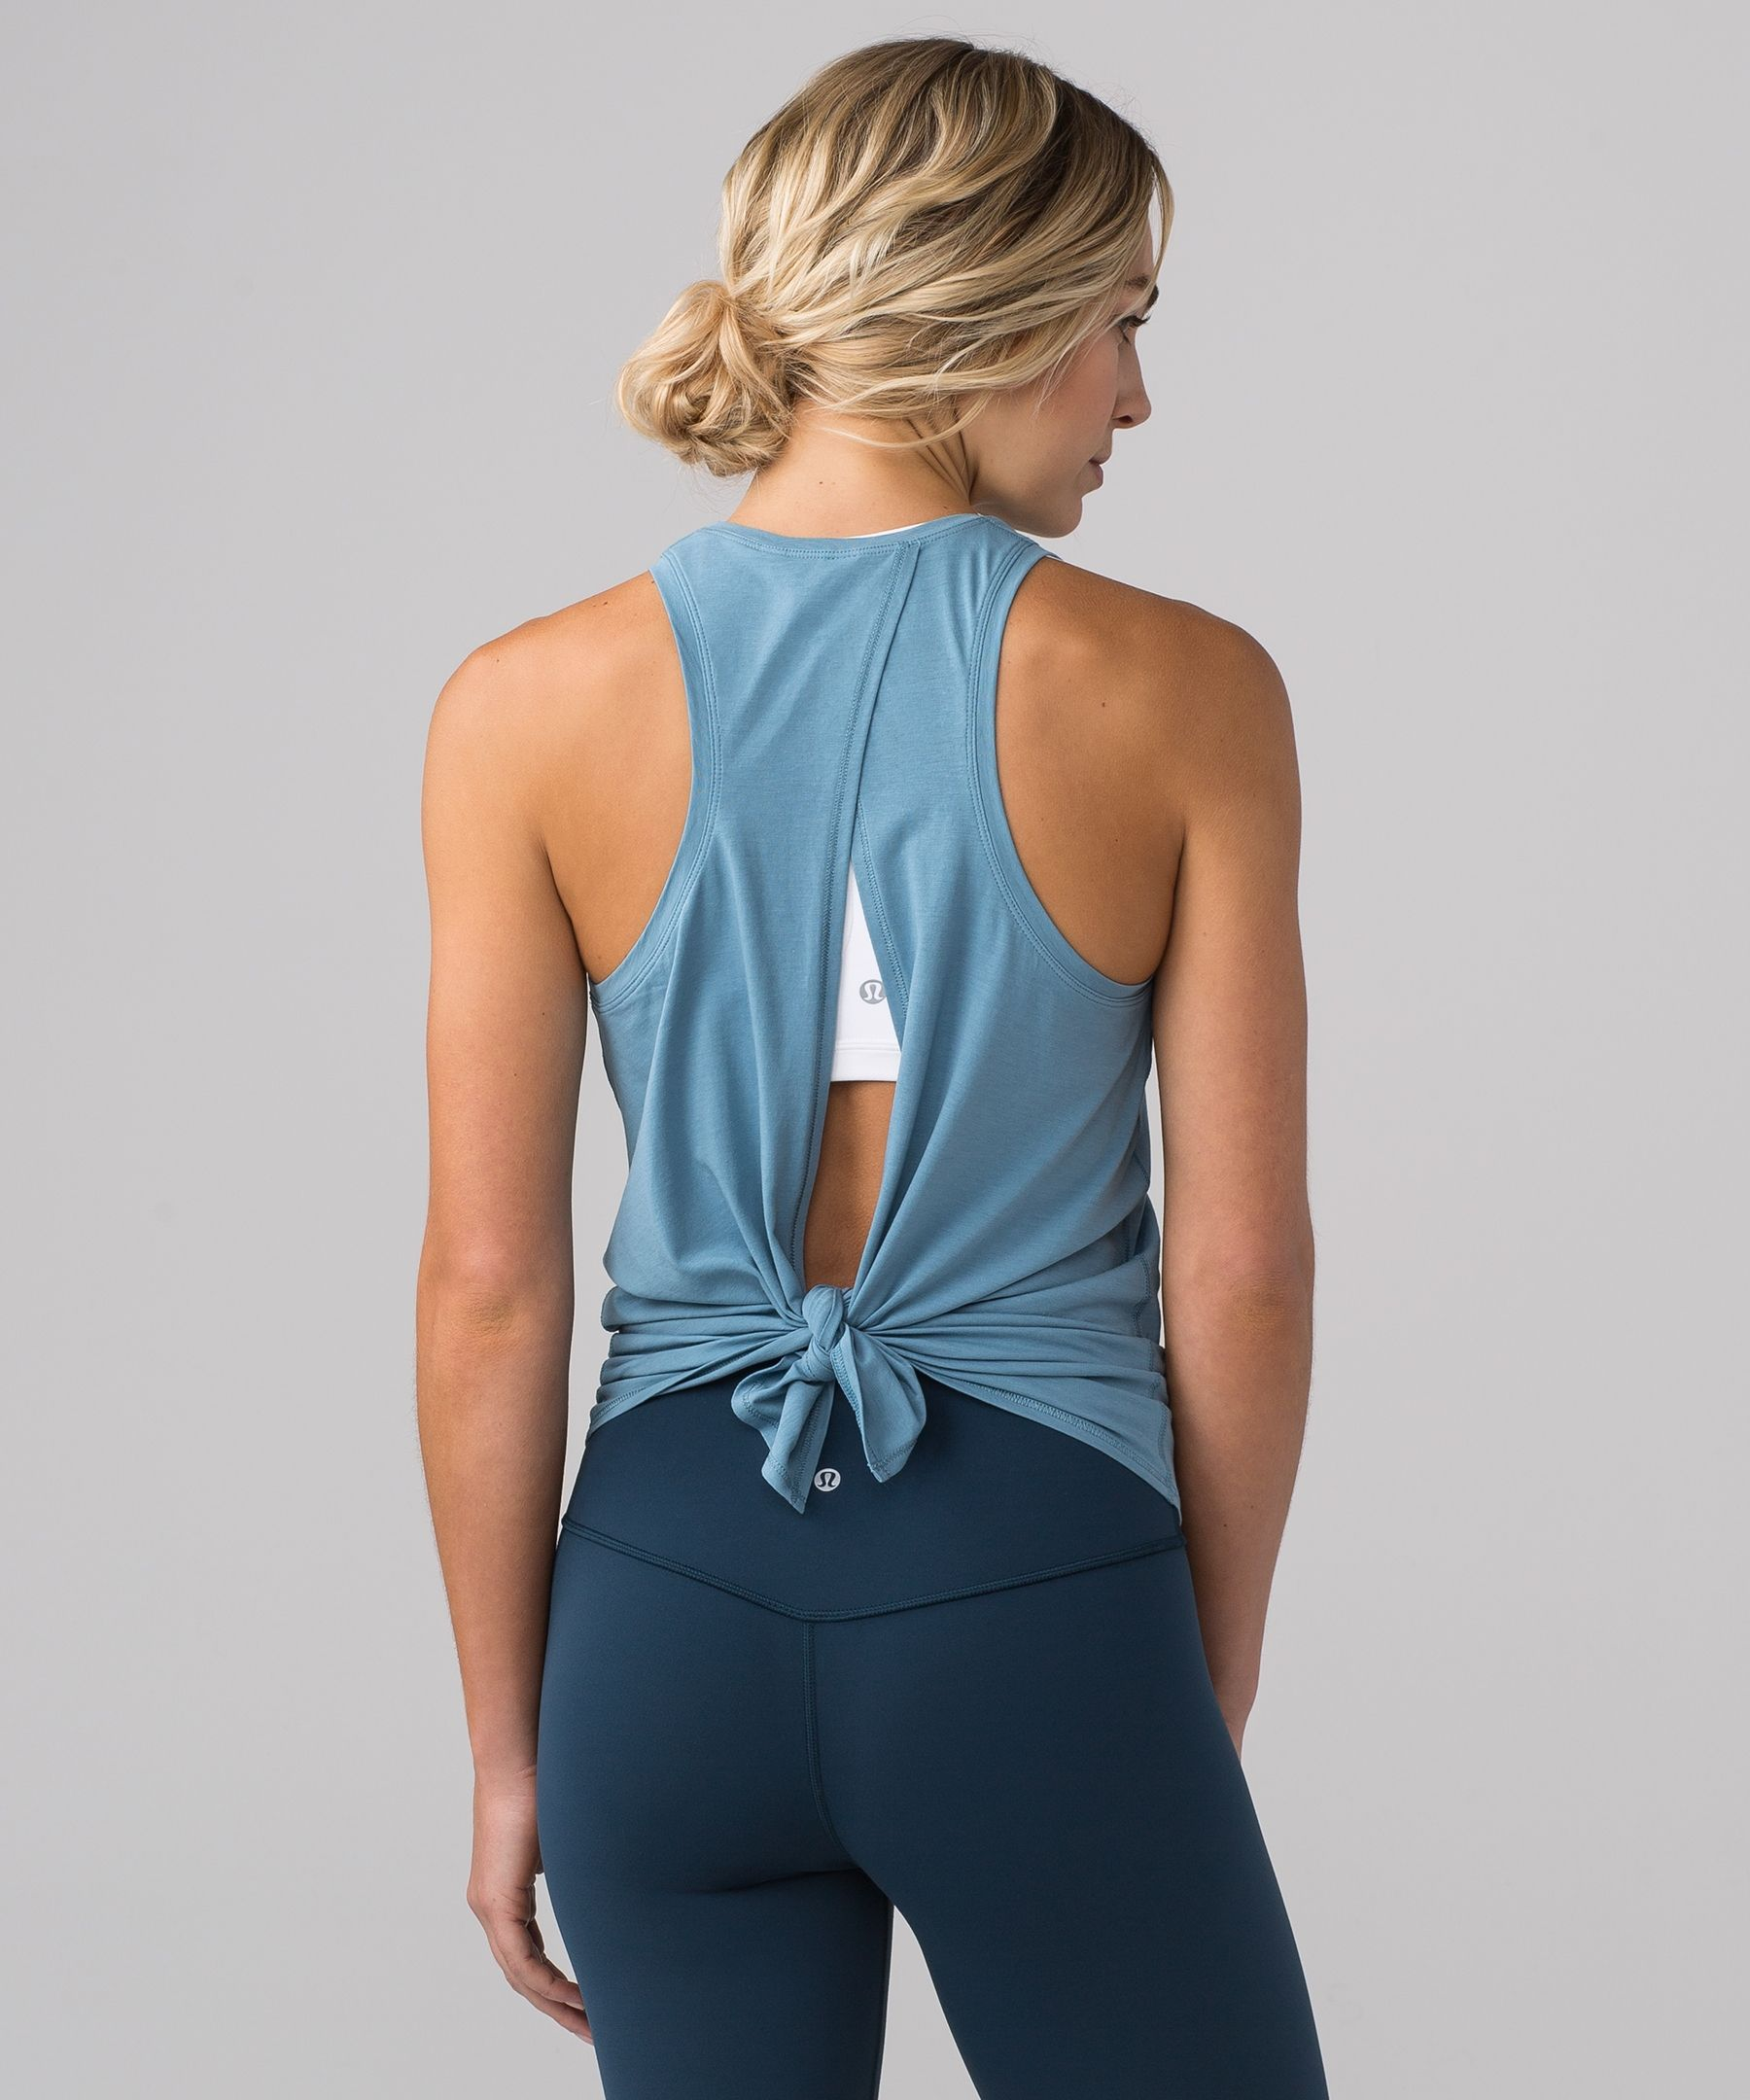 All Tied Up Tank | Women's Yoga Tank Tops | lululemon athletica